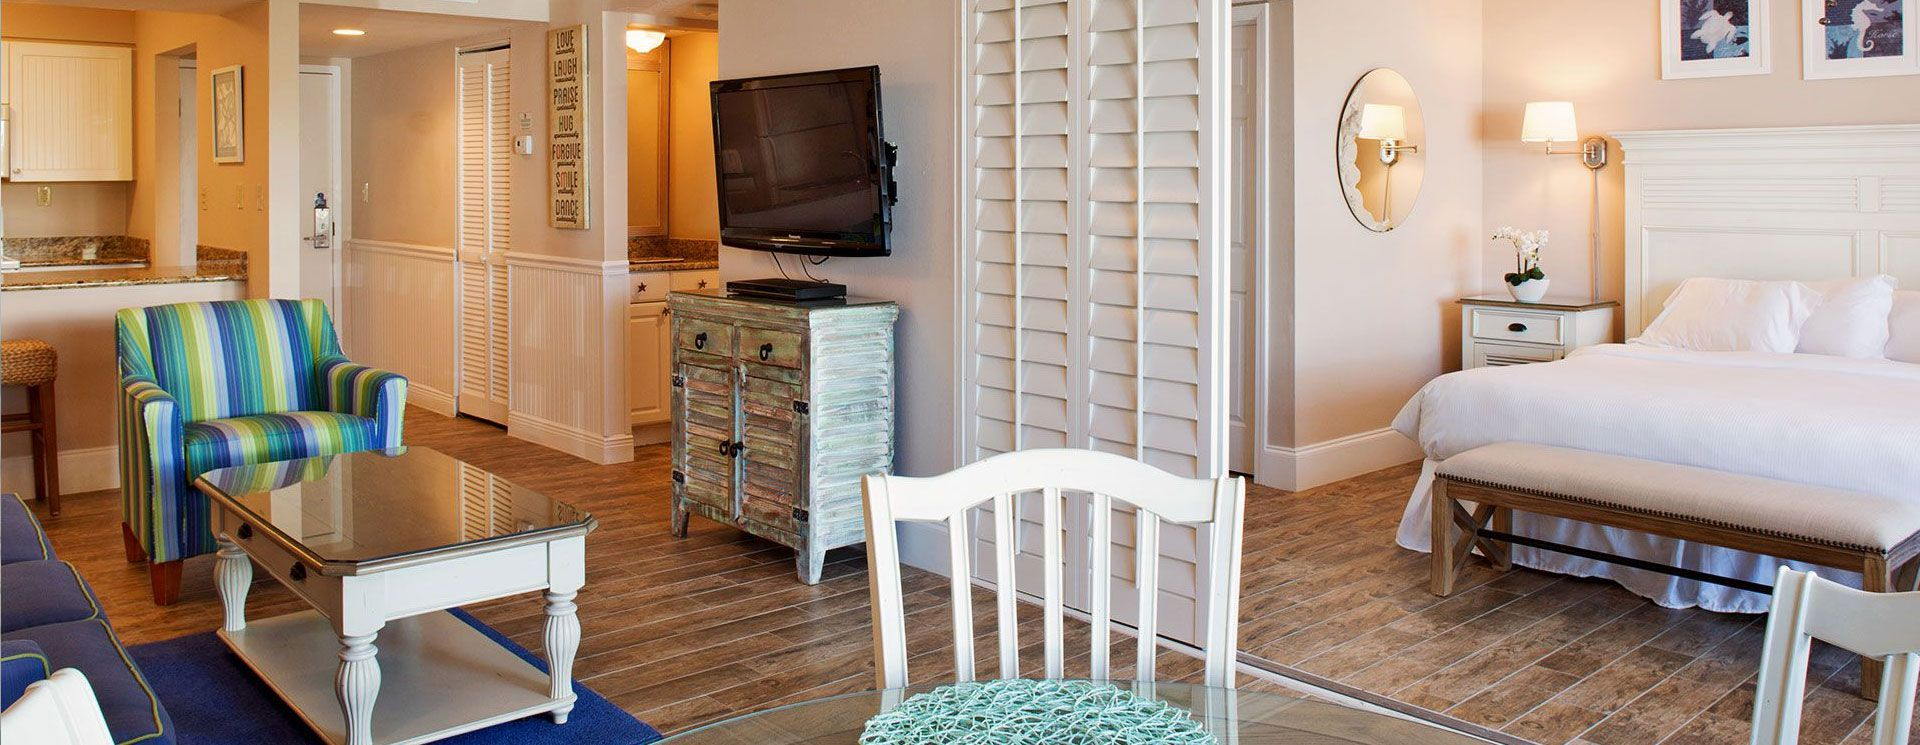 studio room sanibel island accommodations vacation. Black Bedroom Furniture Sets. Home Design Ideas